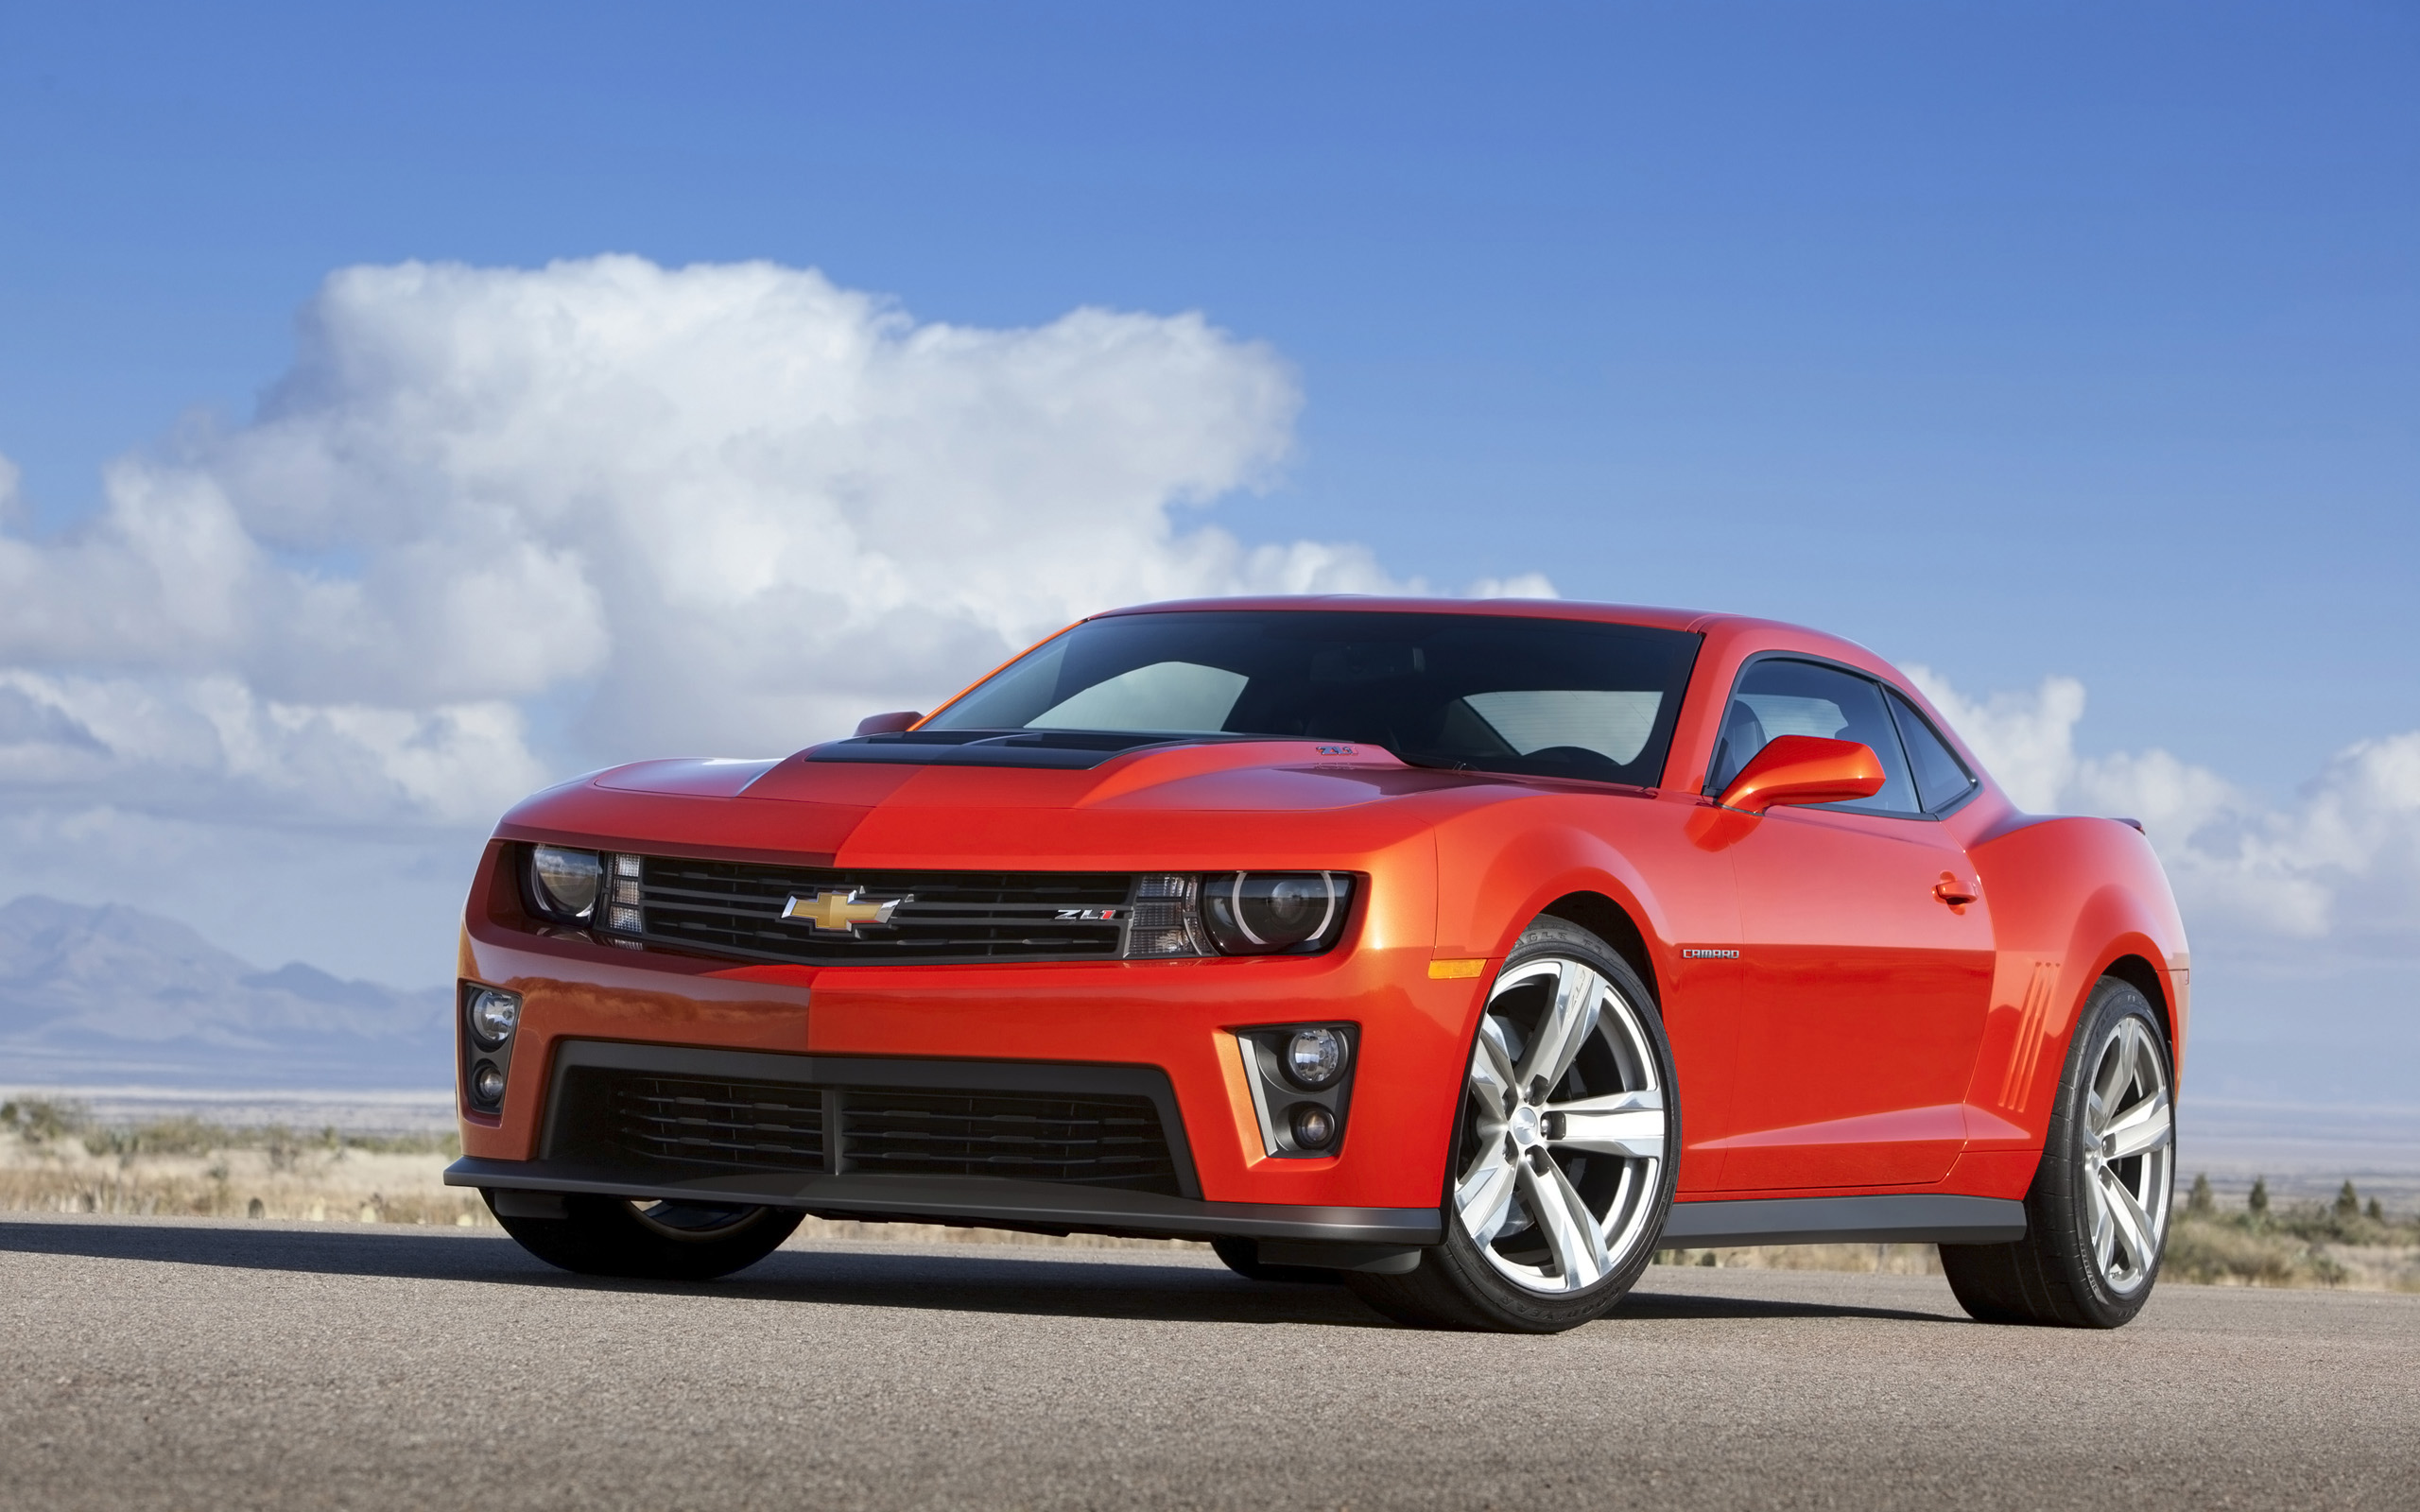 2014 chevrolet camaro zl1 coupe wallpaper hd car wallpapers. Black Bedroom Furniture Sets. Home Design Ideas